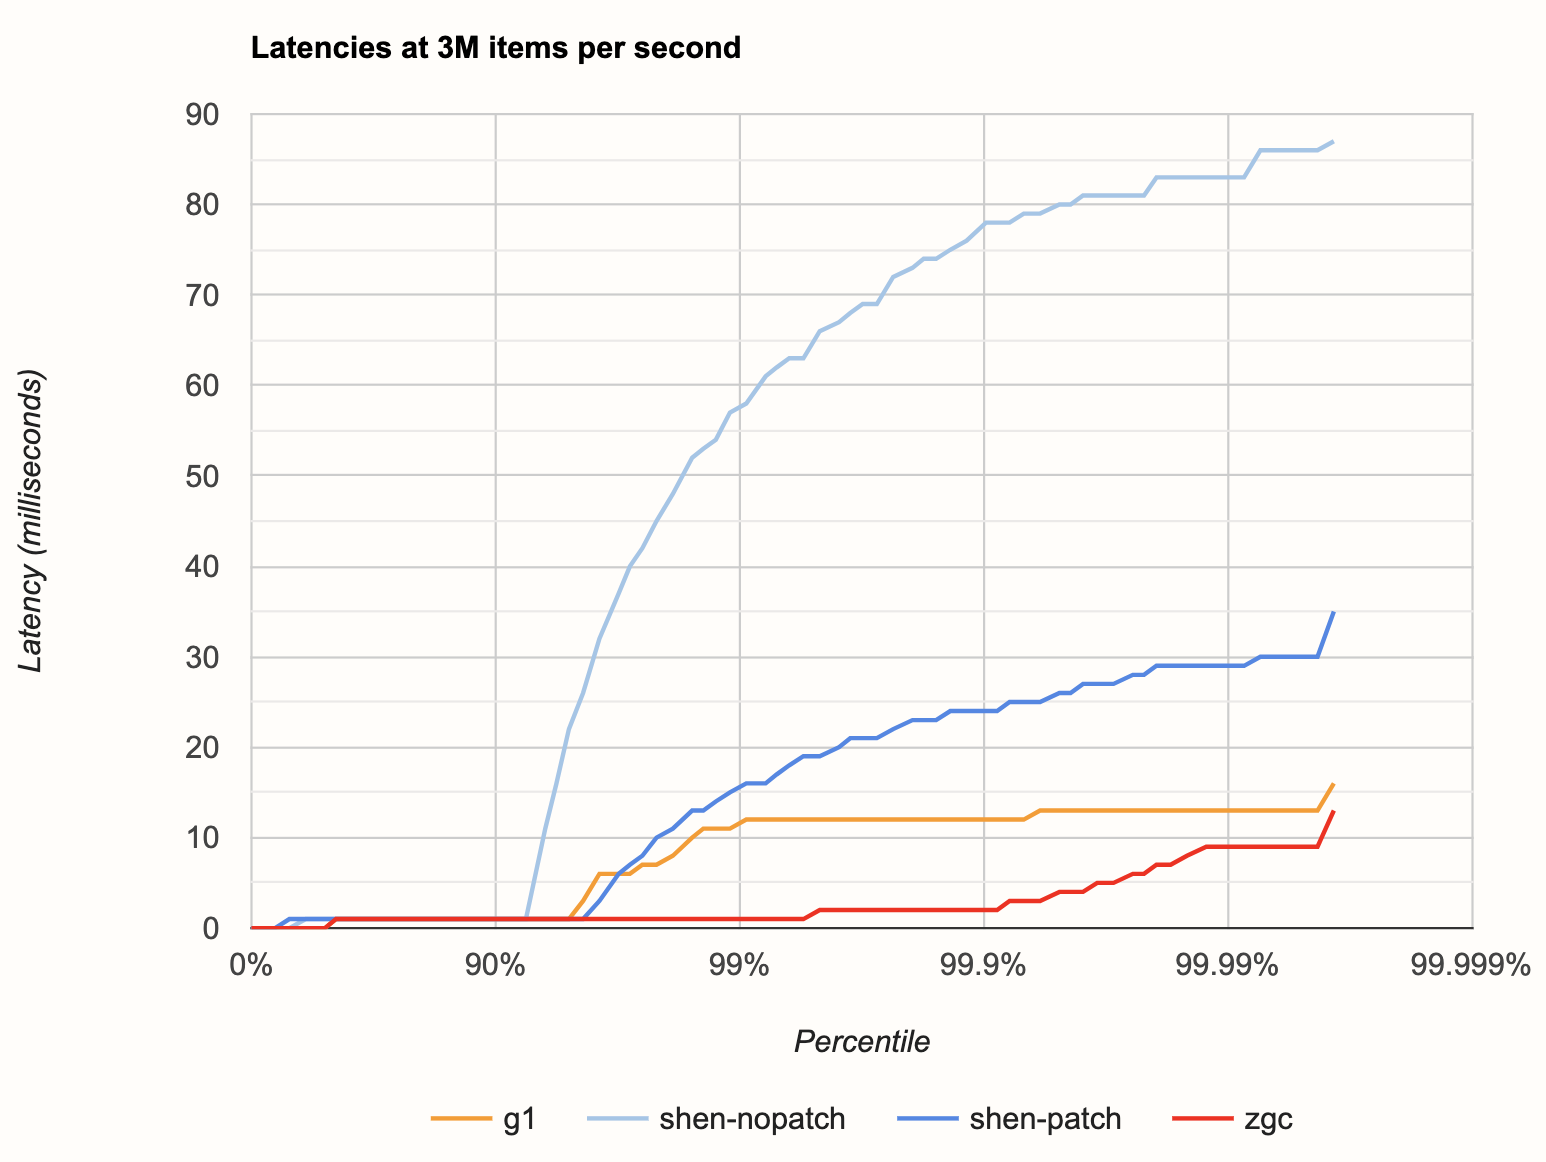 Latency on JDK 14.0.2 pre-release, 3M items per second